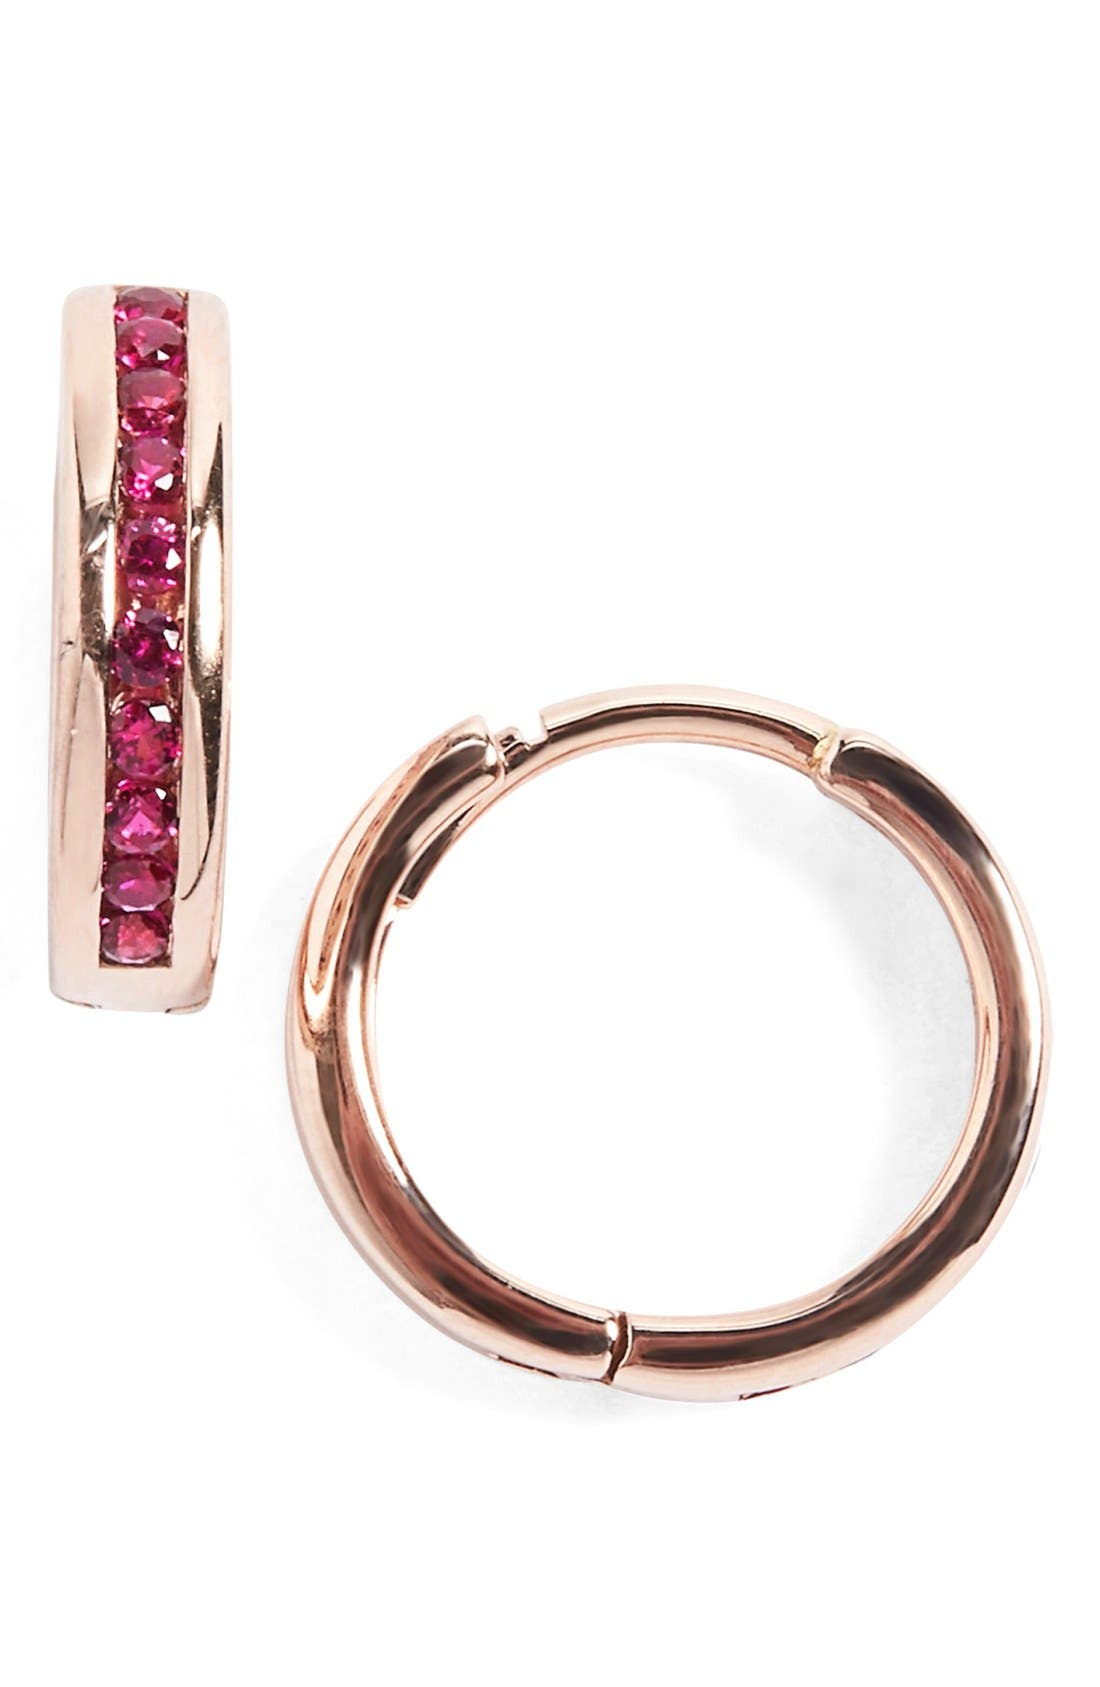 ANNA SHEFFIELD 'Licol' Ruby Hoop Earrings